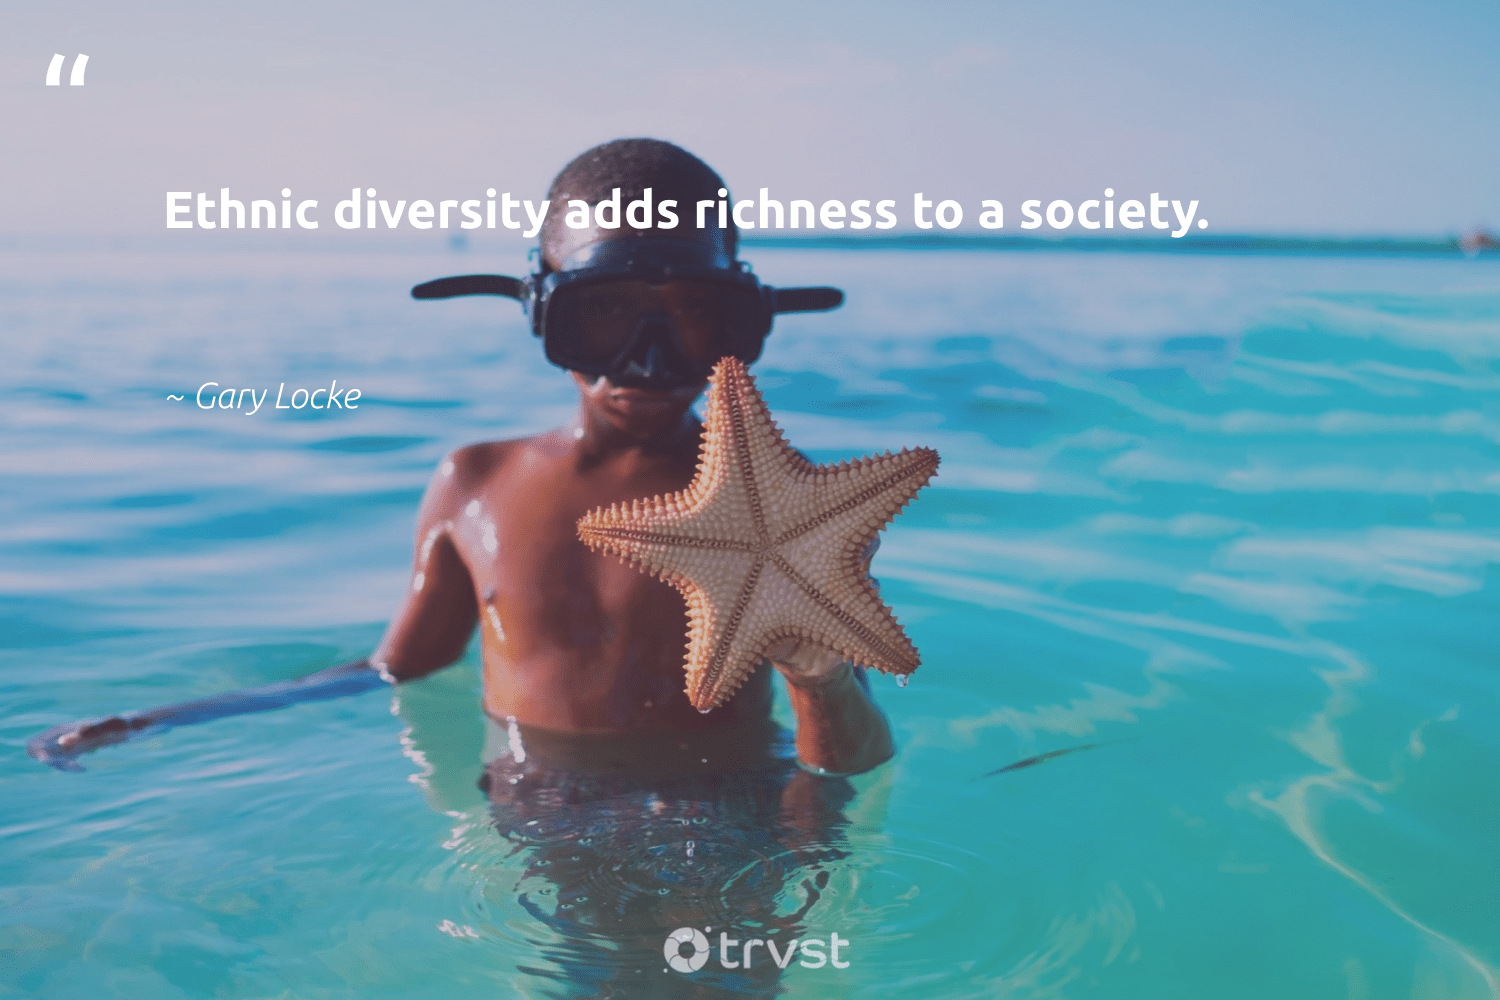 """Ethnic diversity adds richness to a society.""  - Gary Locke #trvst #quotes #diversity #society #discrimination #representationmatters #bethechange #socialgood #thinkgreen #inclusion #makeadifference #weareallone"